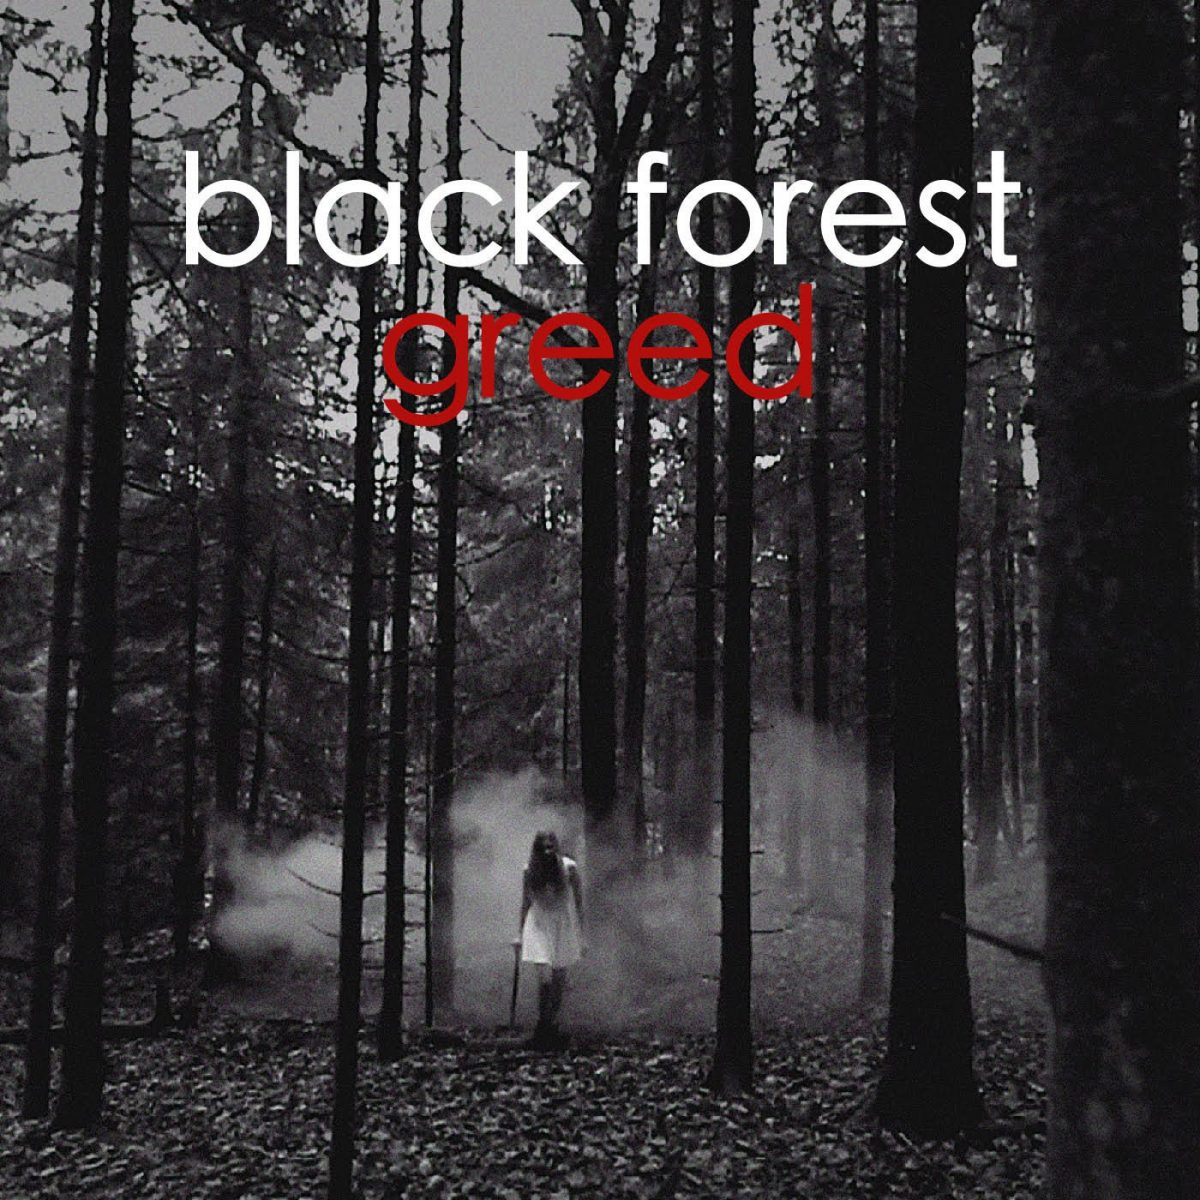 Exclusive video premiere newest single Black Forest - watch 'Greed' here